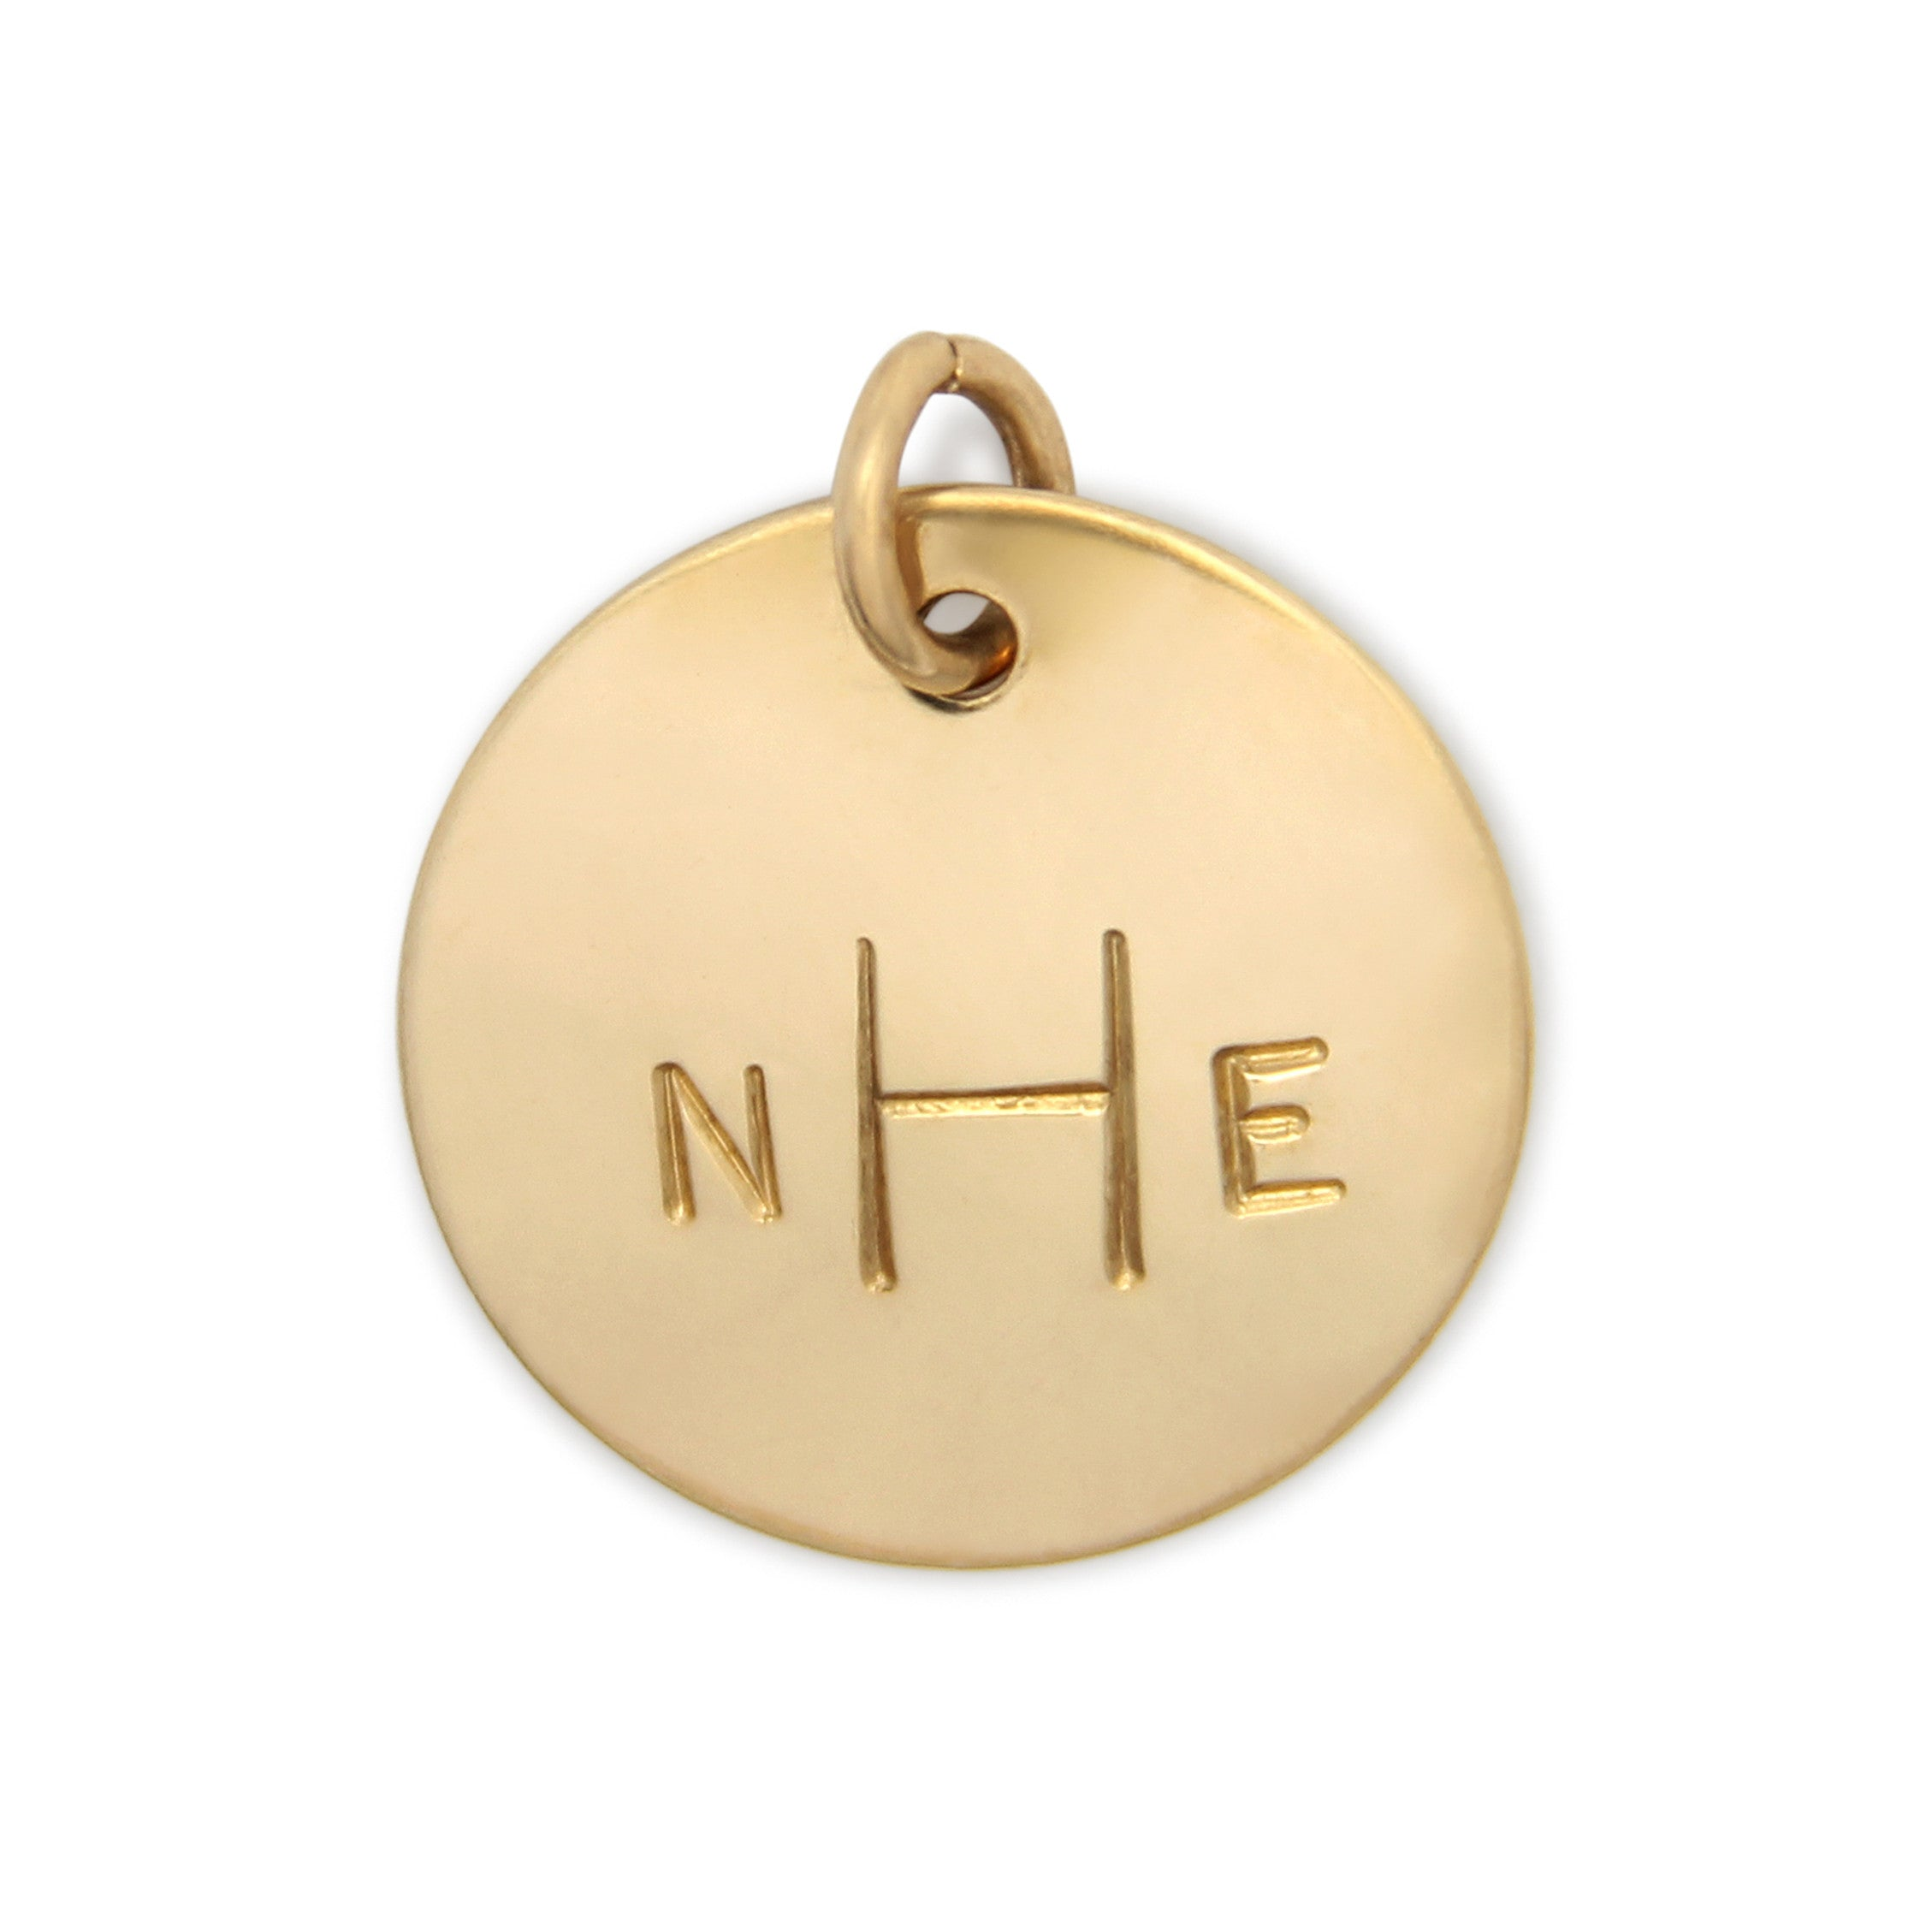 Gold hand stamped personalized pendant monogram charm name jewelry gold hand stamped pendant monogram charm personalized jewelry aloadofball Images